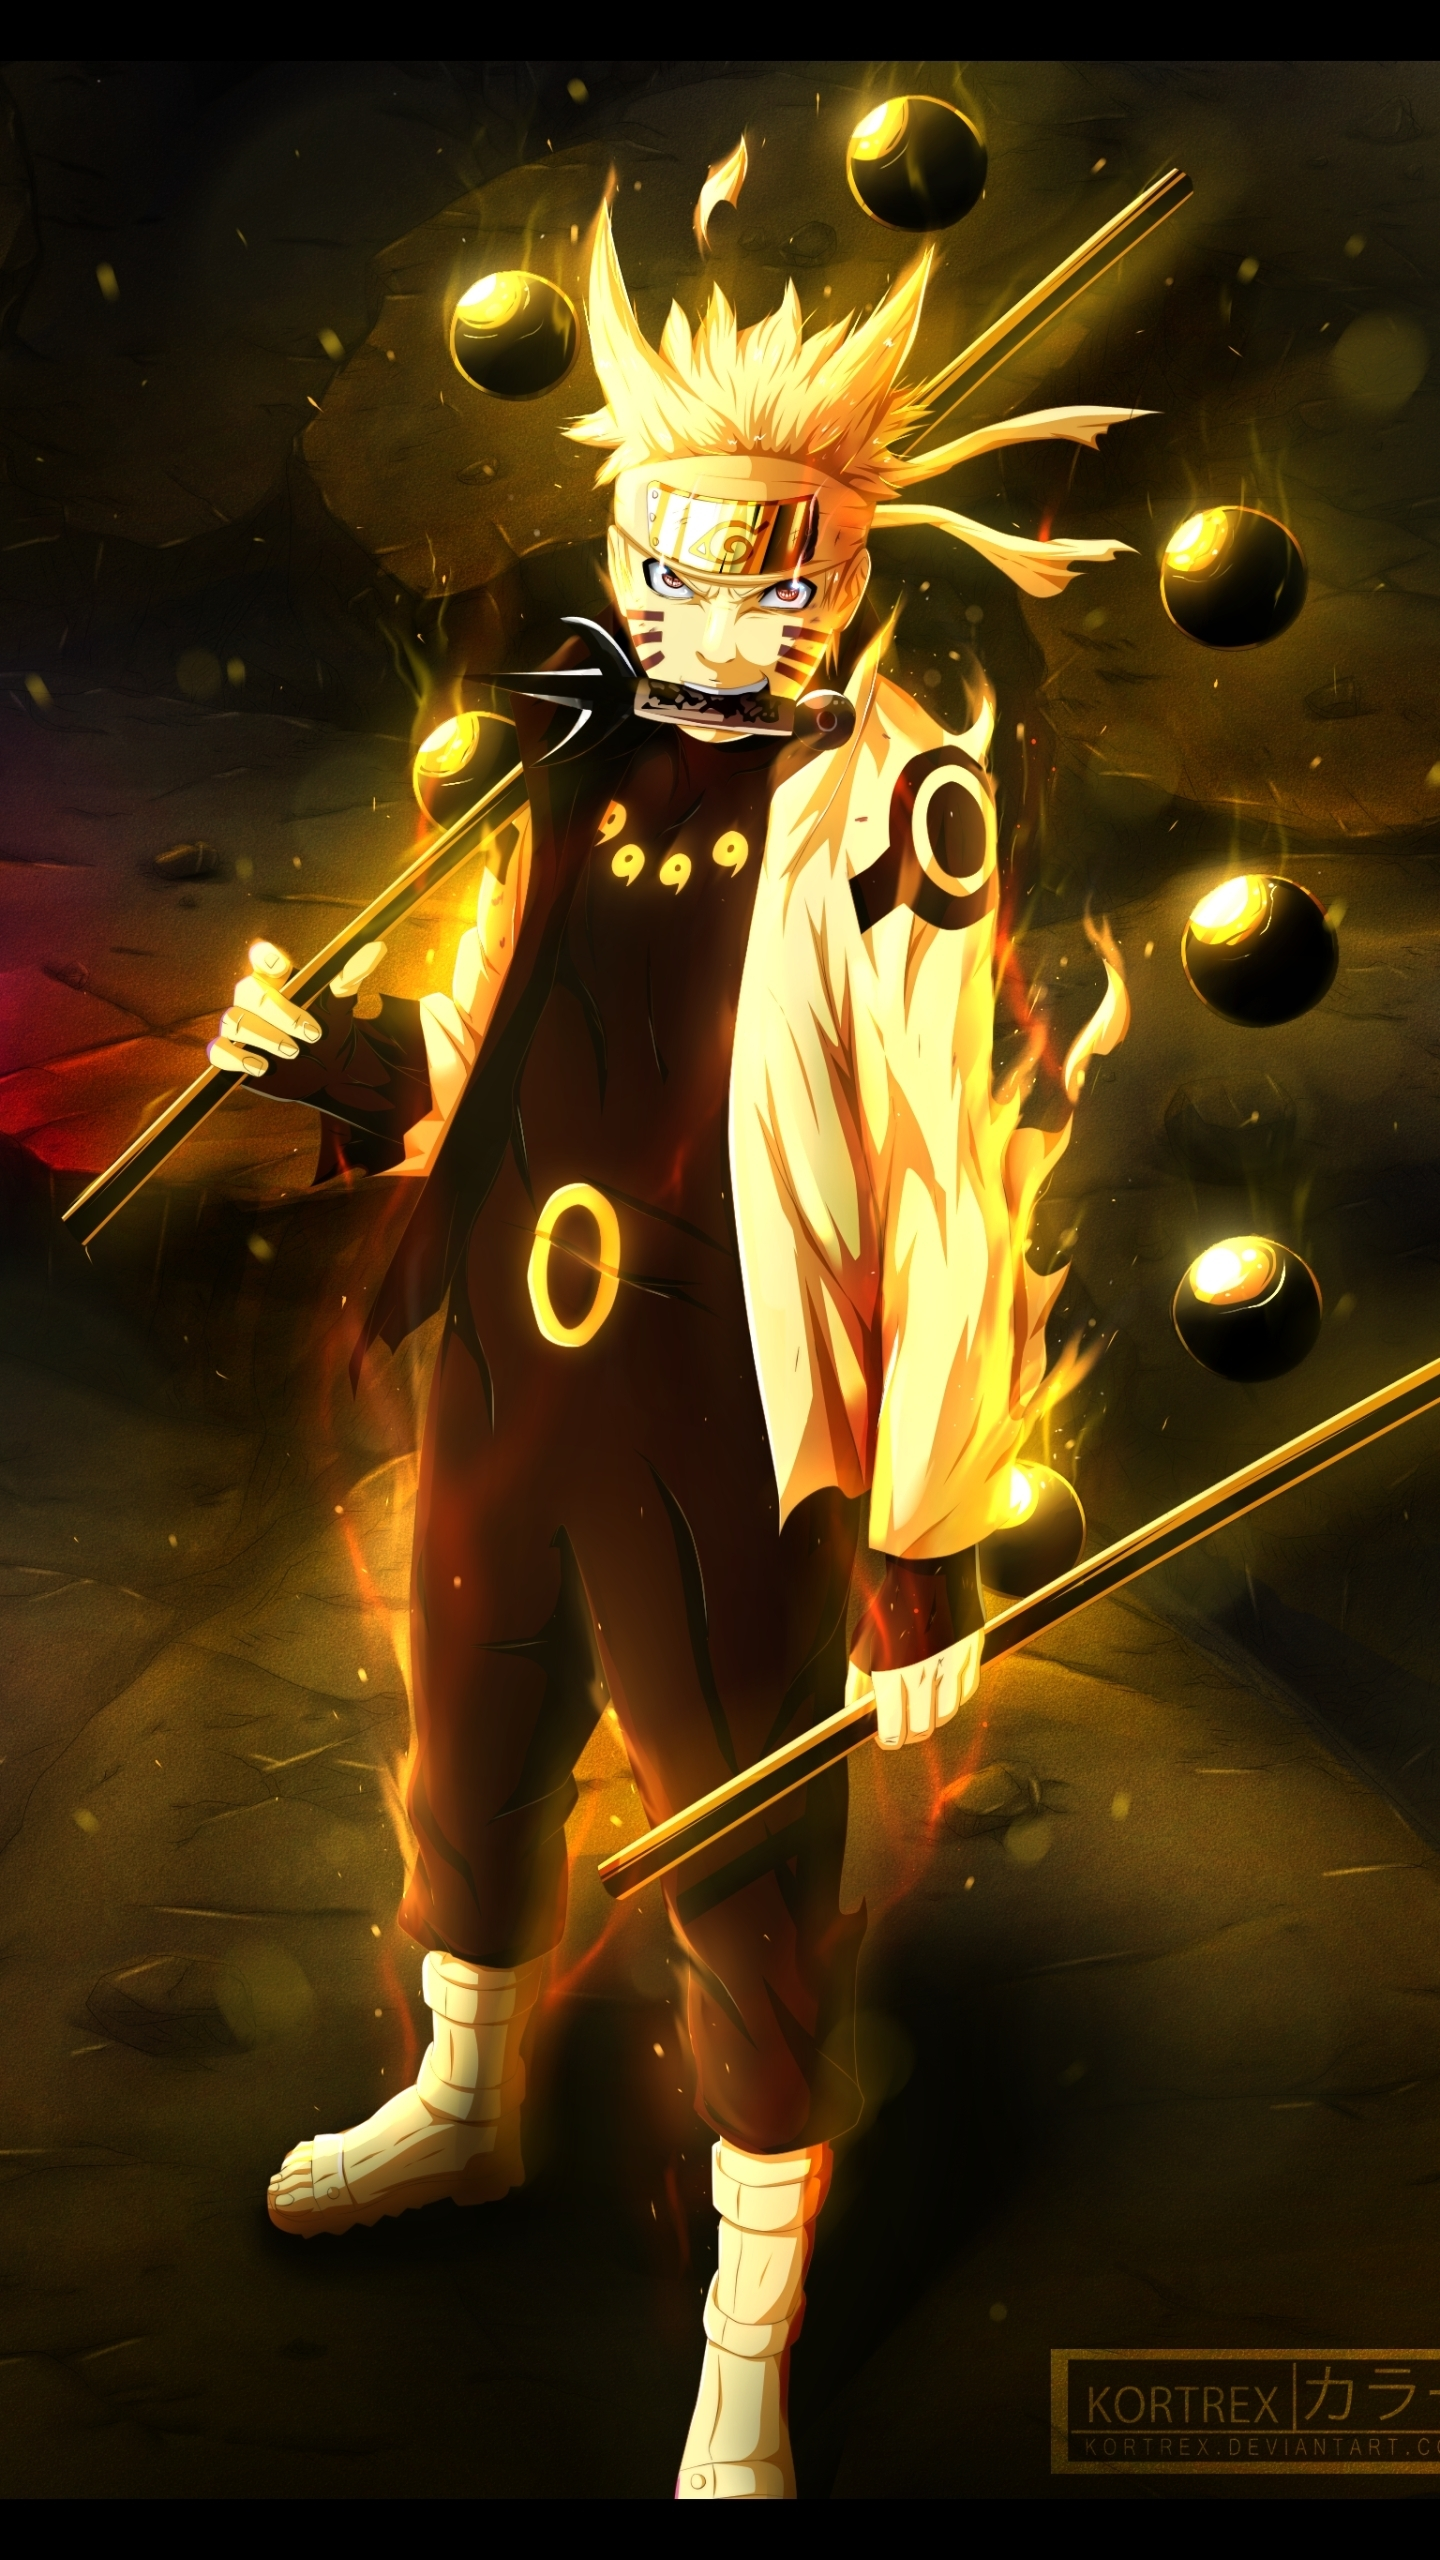 naruto wallpaper iphone 6 - download best naruto wallpaper iphone